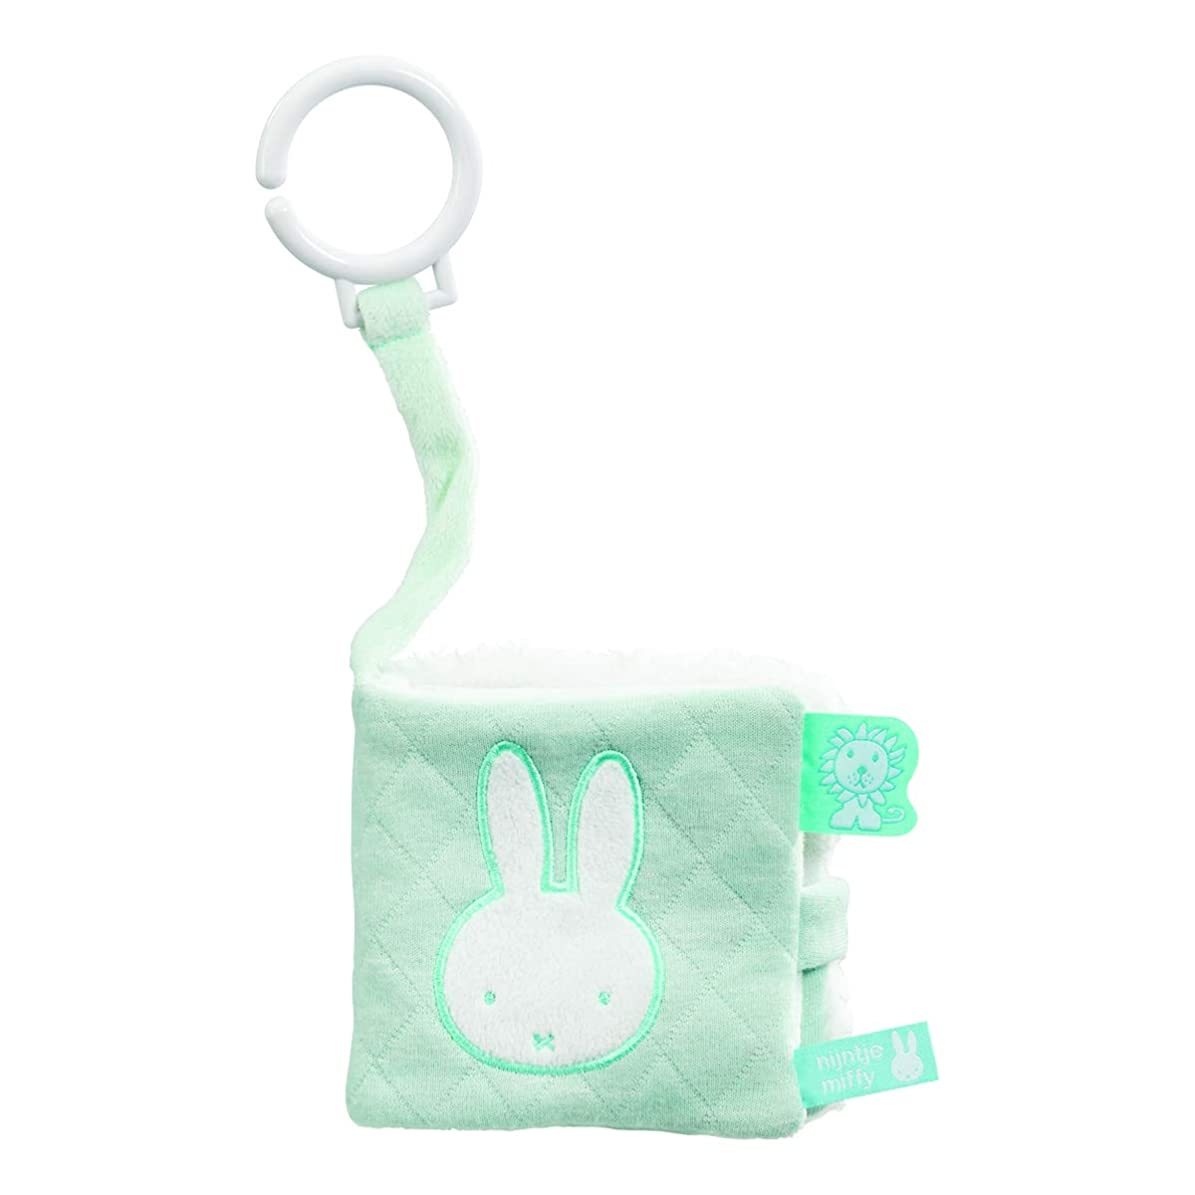 共産主義者予感モネRainbow Designs Miffy Mint Activity Book